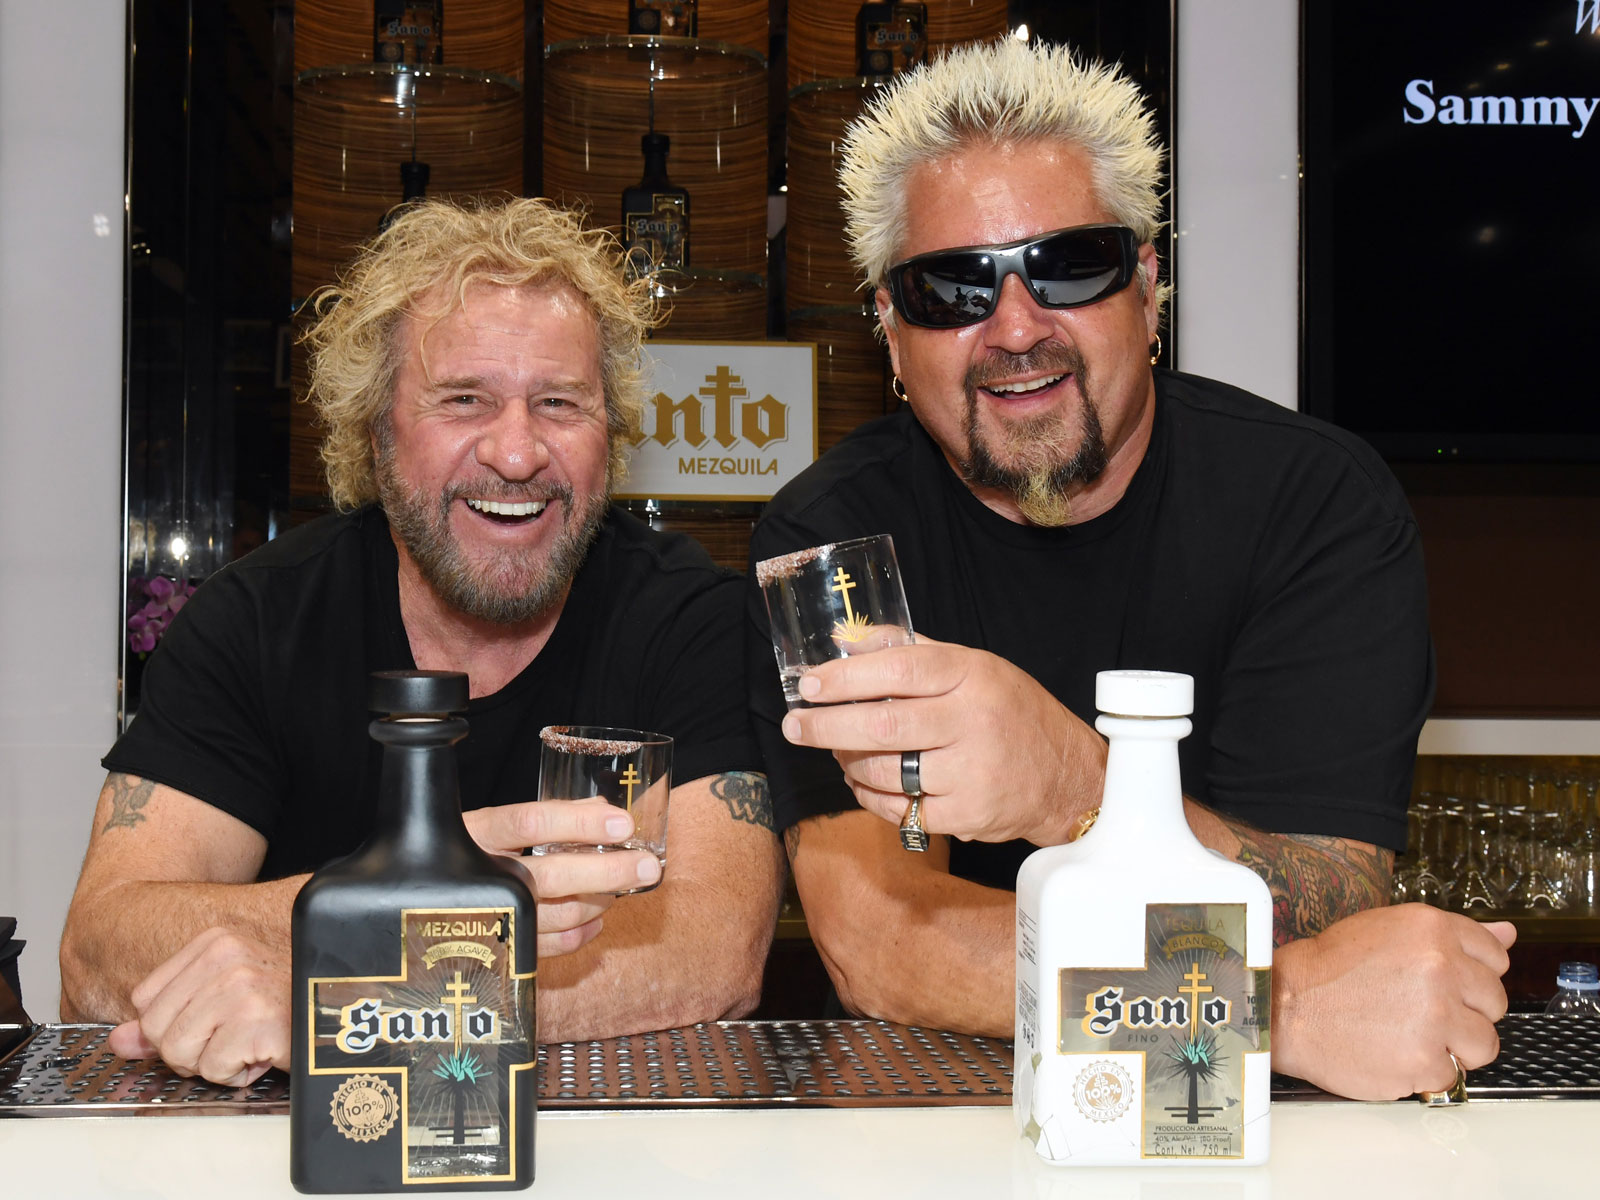 Sammy Hagar and Guy Fieri Team Up on a Tequila